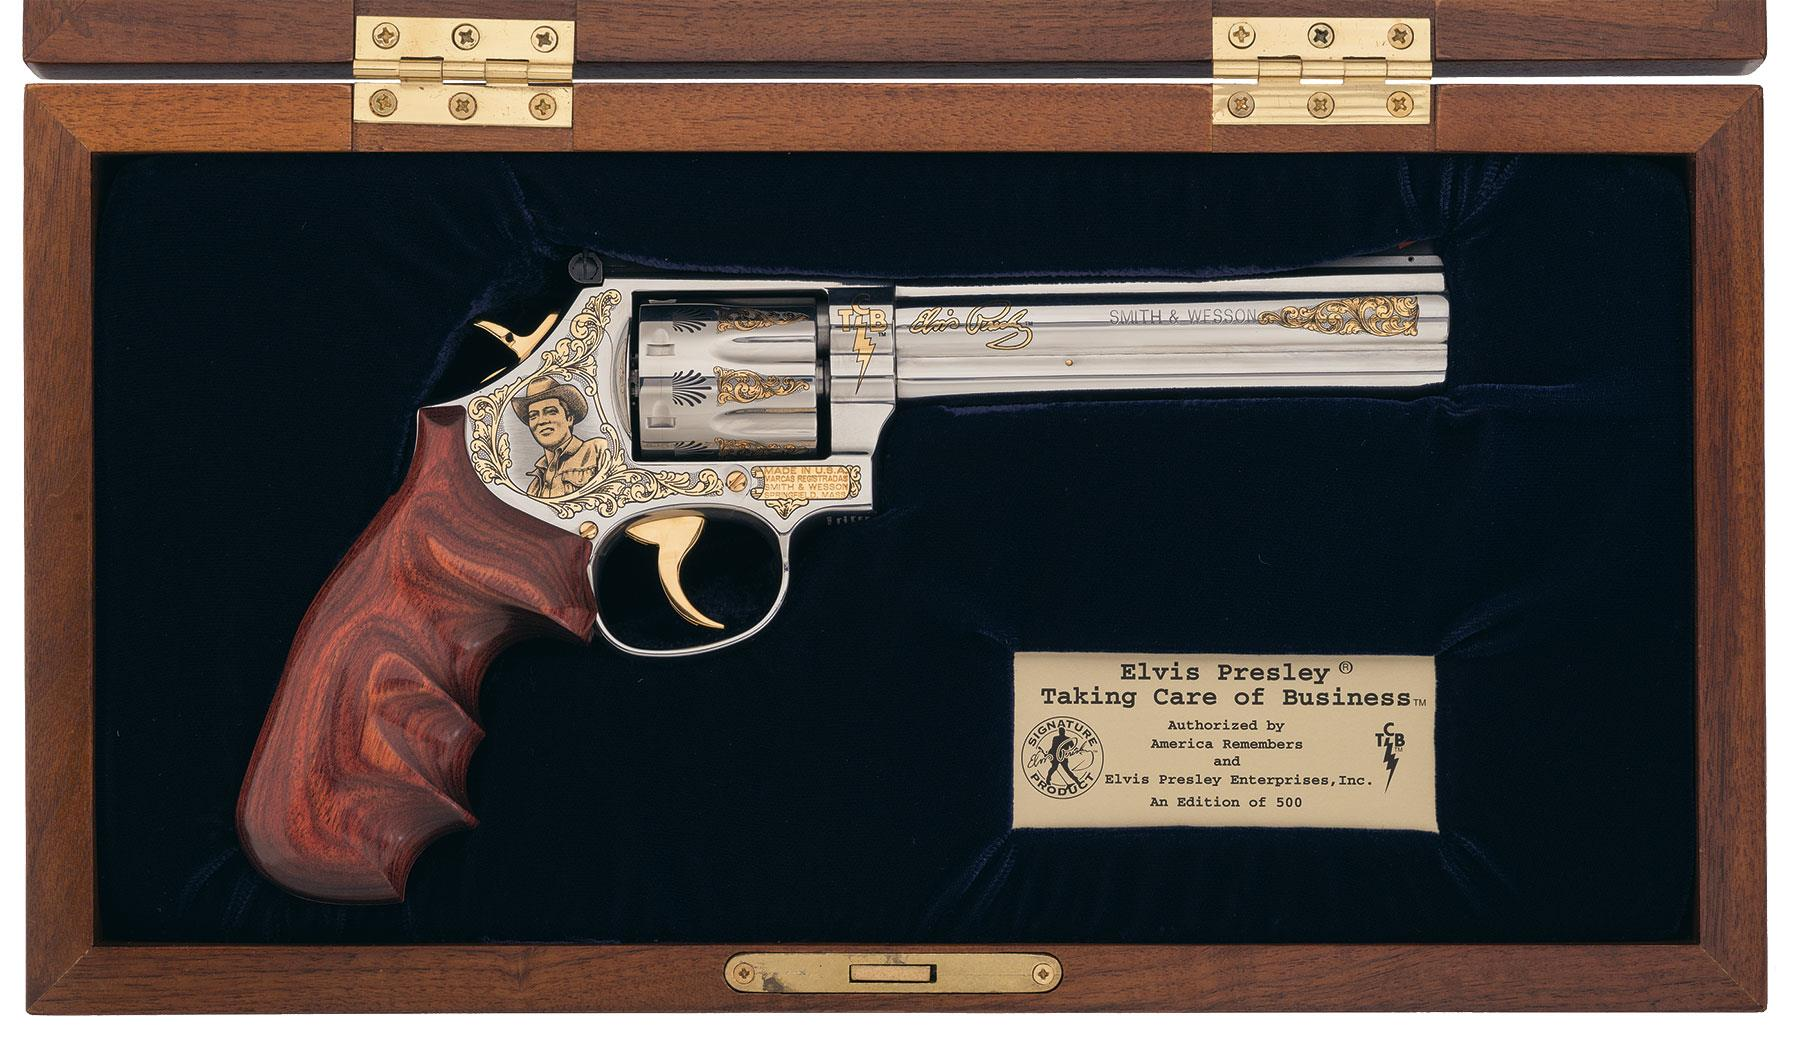 Cased Smith & Wesson Elvis Presley Taking Care Of Business